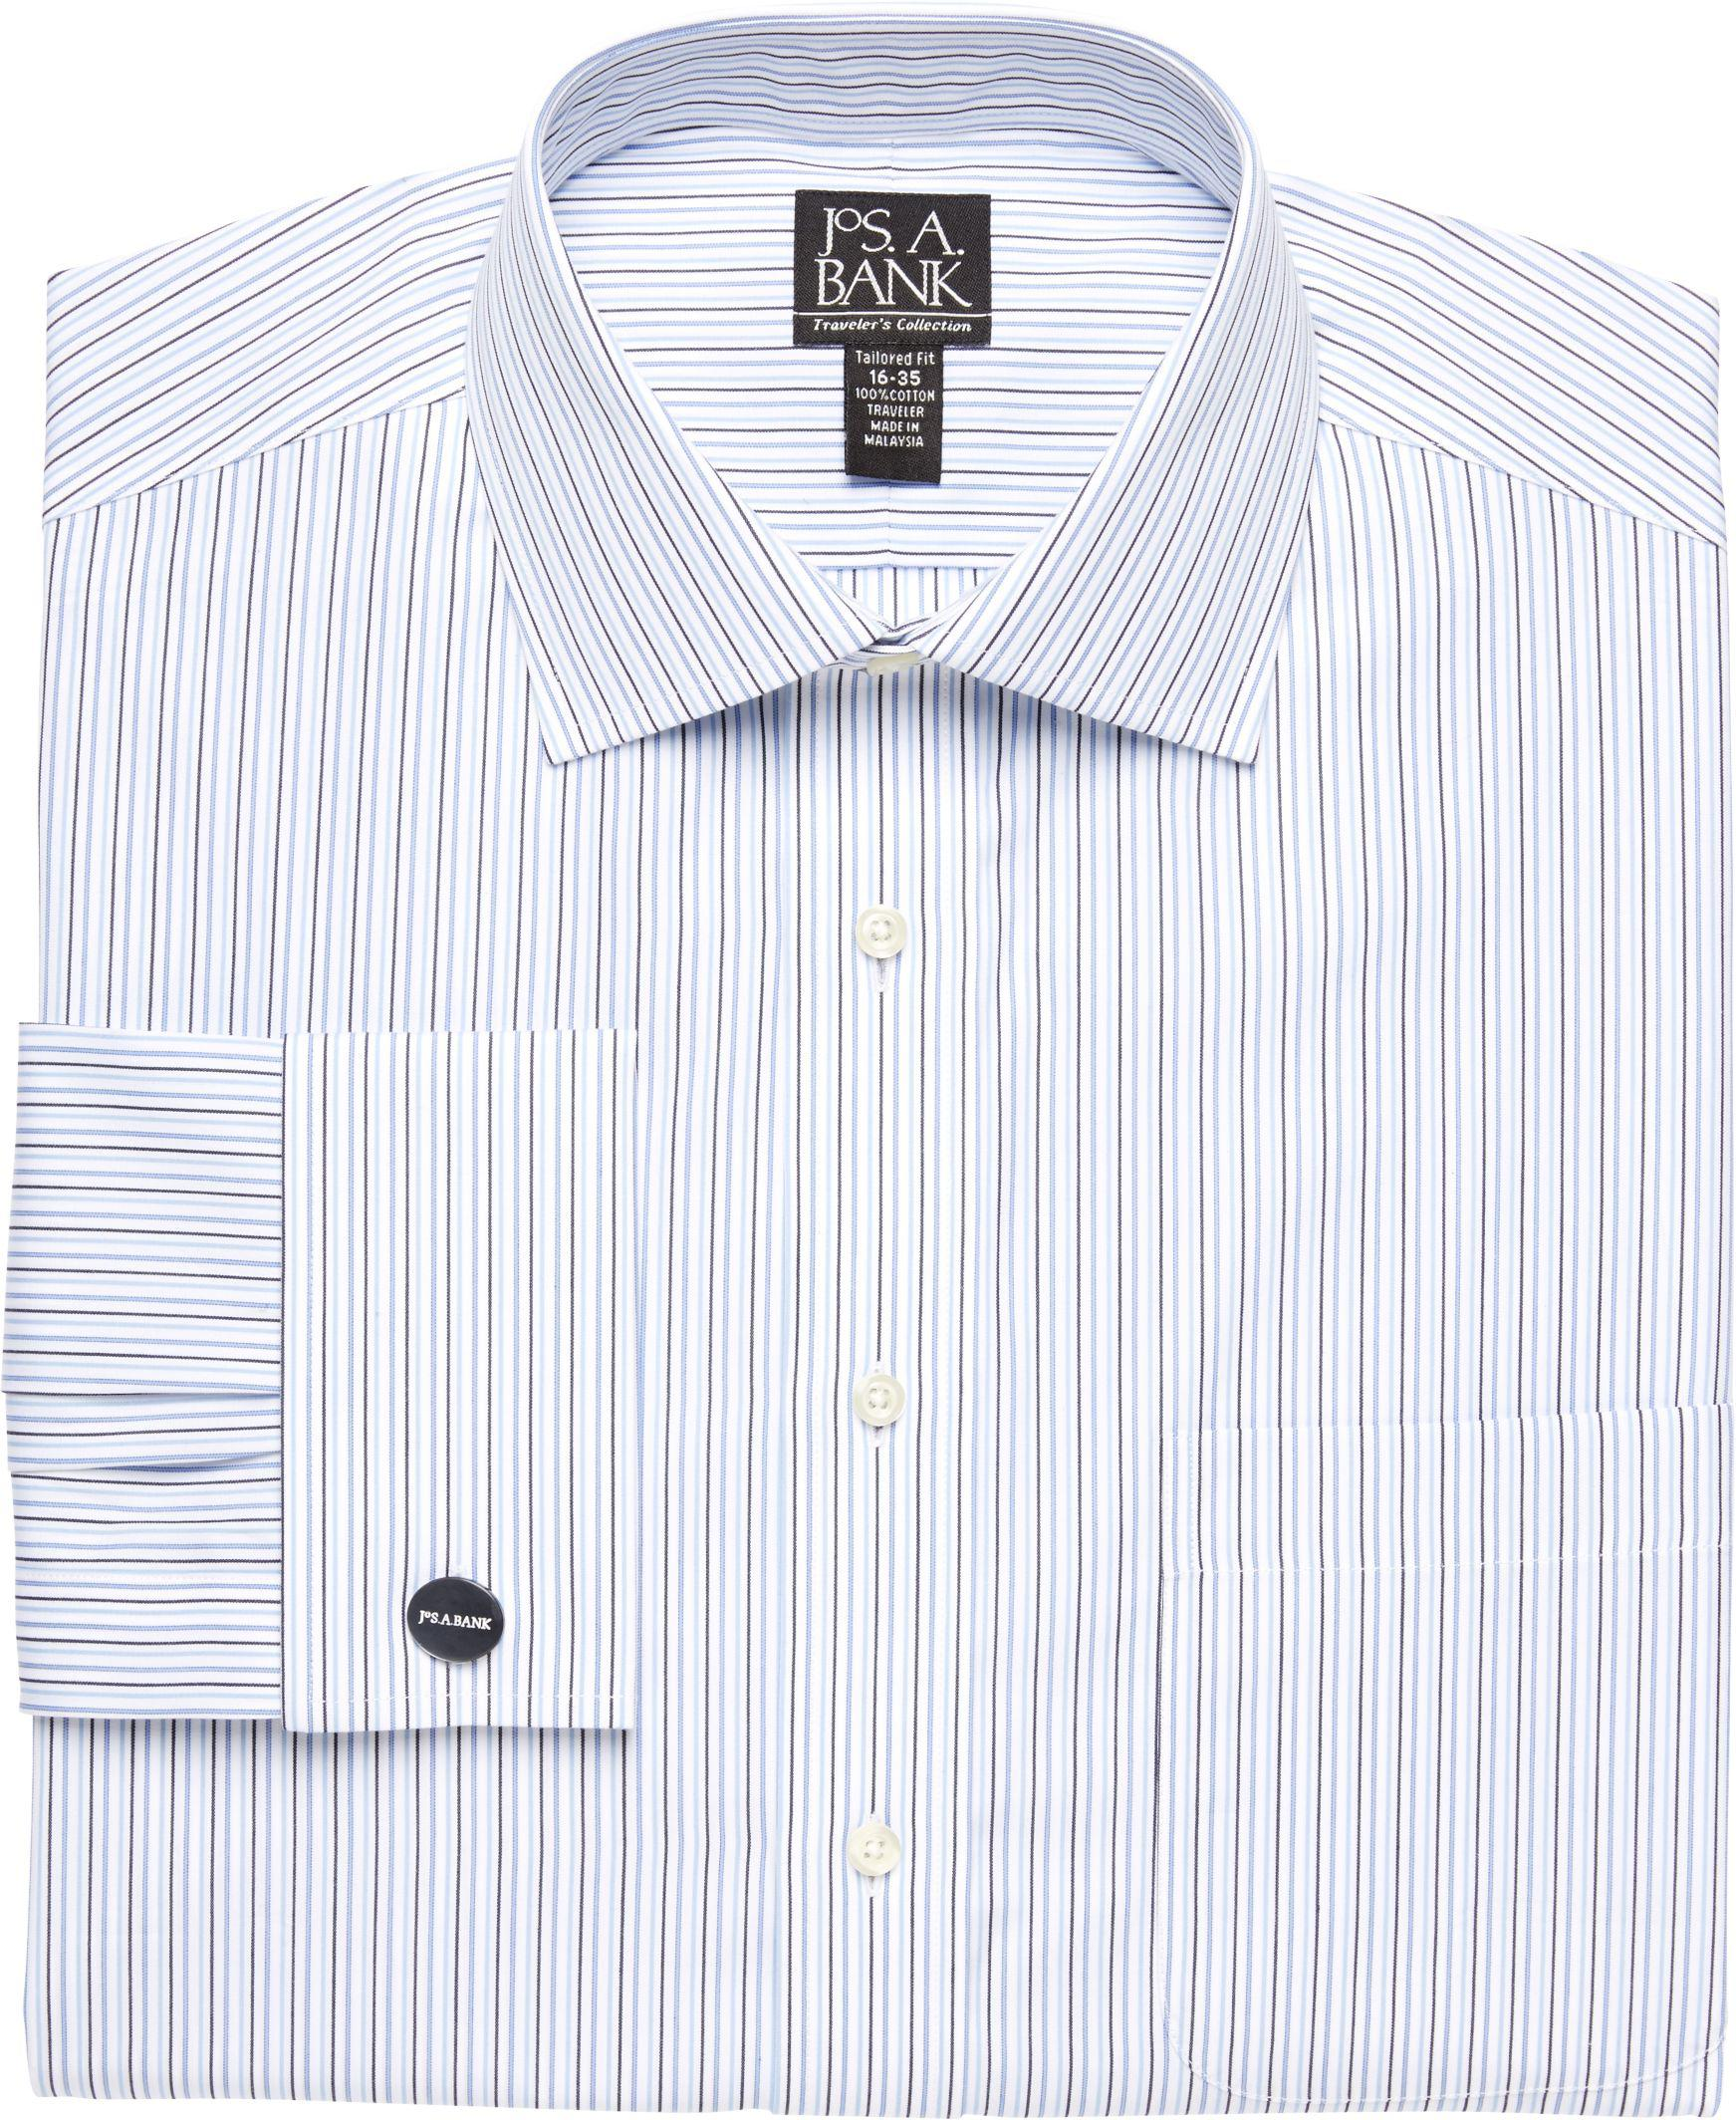 Jos a bank traveller collection traditional fit spread for Spread collar dress shirt without tie